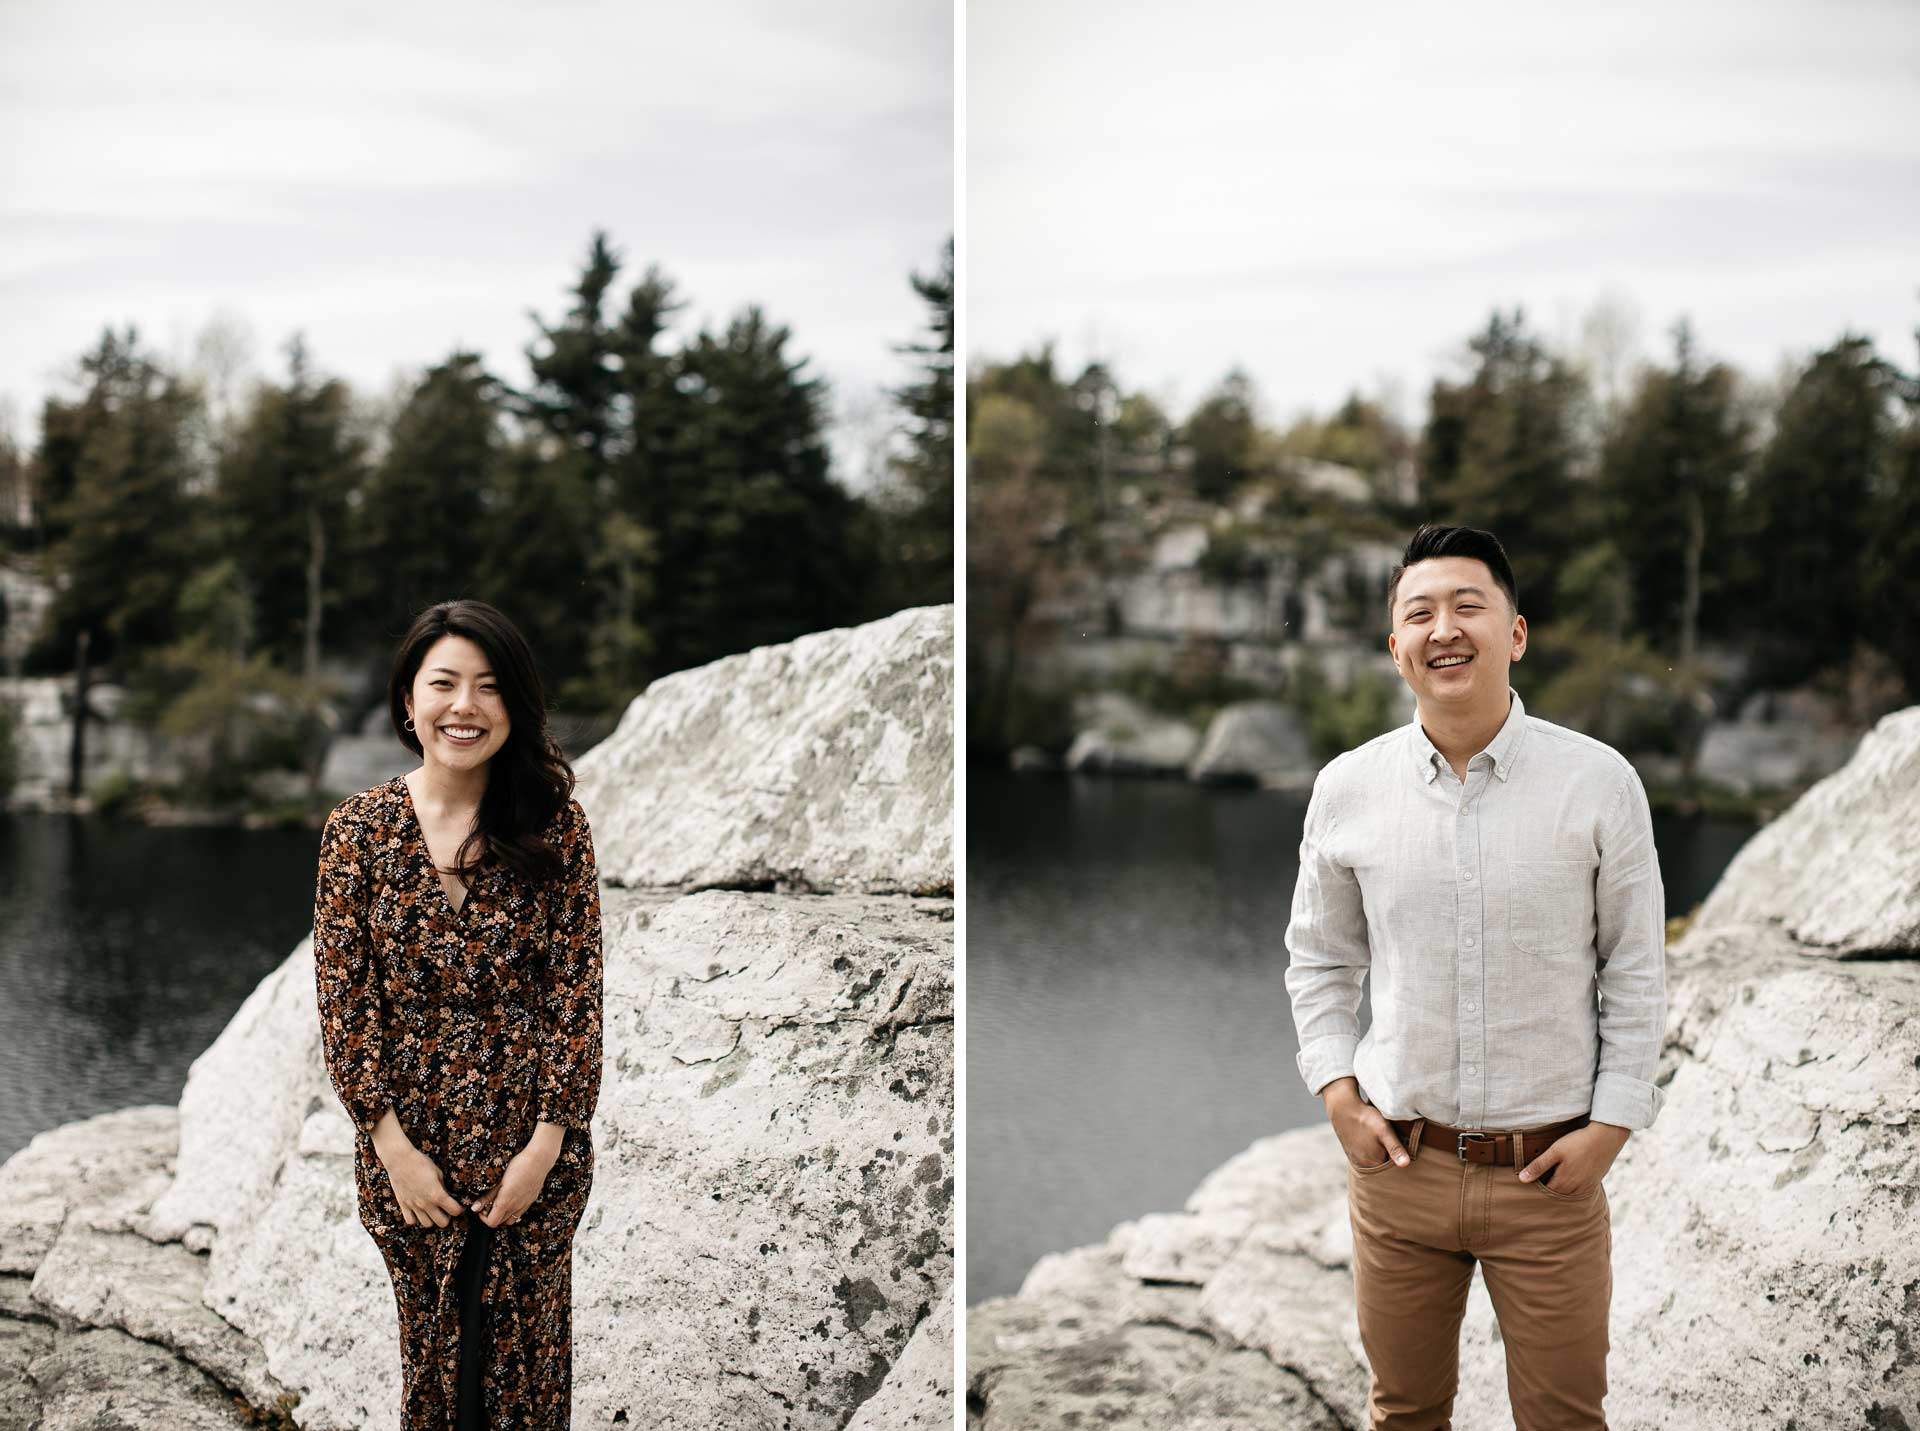 Jinie & Peter's Engagement in Catskills Minnewaska State Park, New York, by Jean-Laurent Gaudy